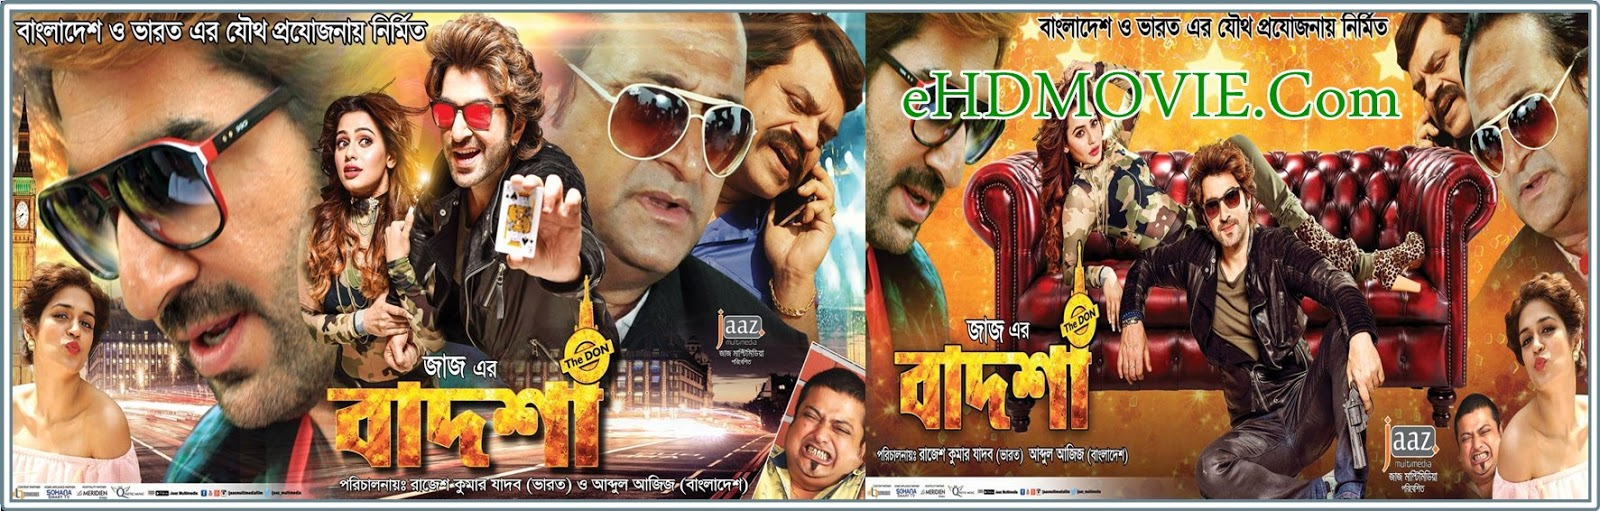 Badsha the Don 2016 Bengali Full Movie Original 480p - 720p HD-Rip 650MB - 1.1GB